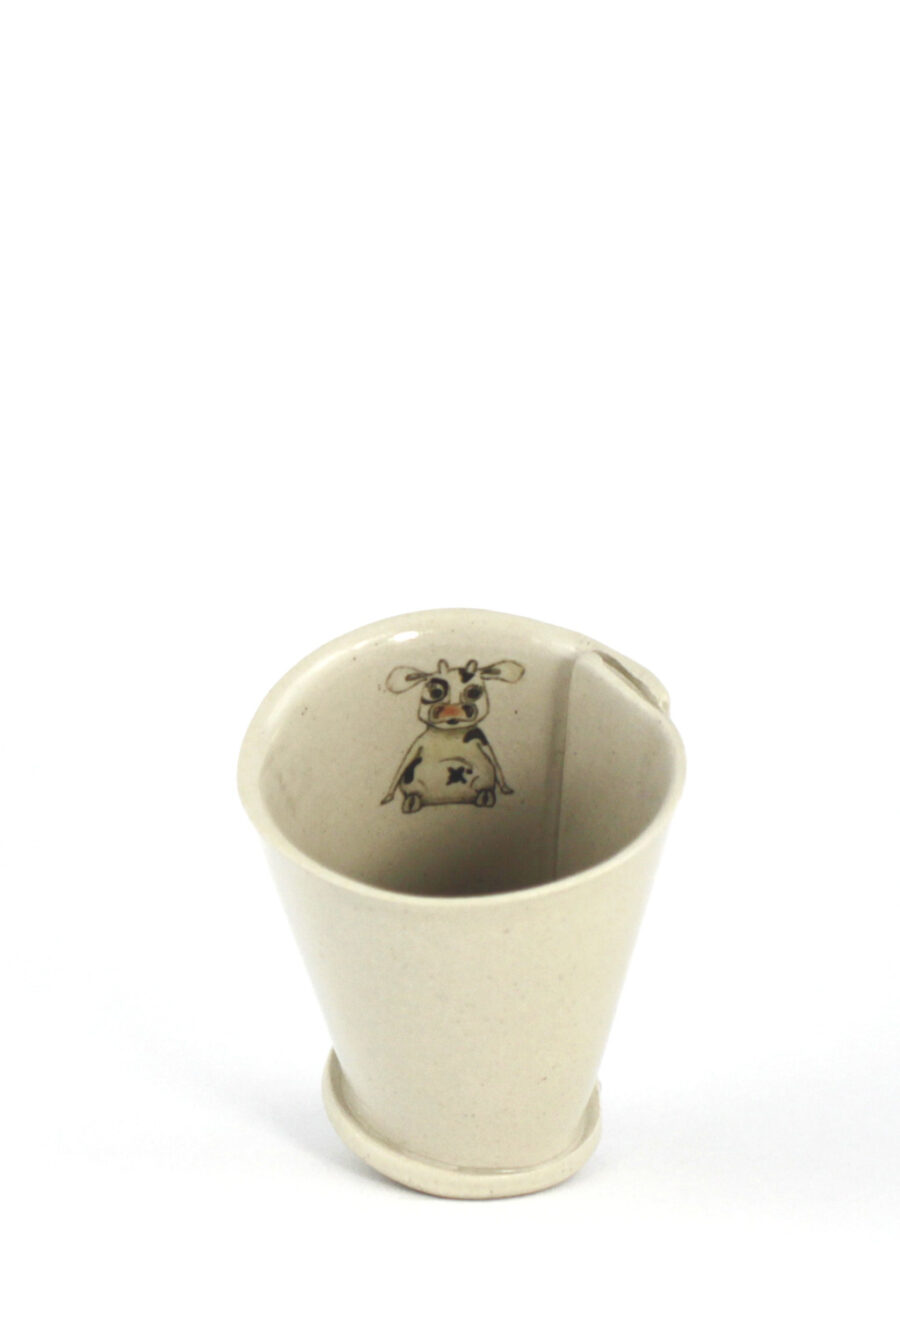 espressotasse-mit-kuh-keramik-my-deer-illustrated-ceramics